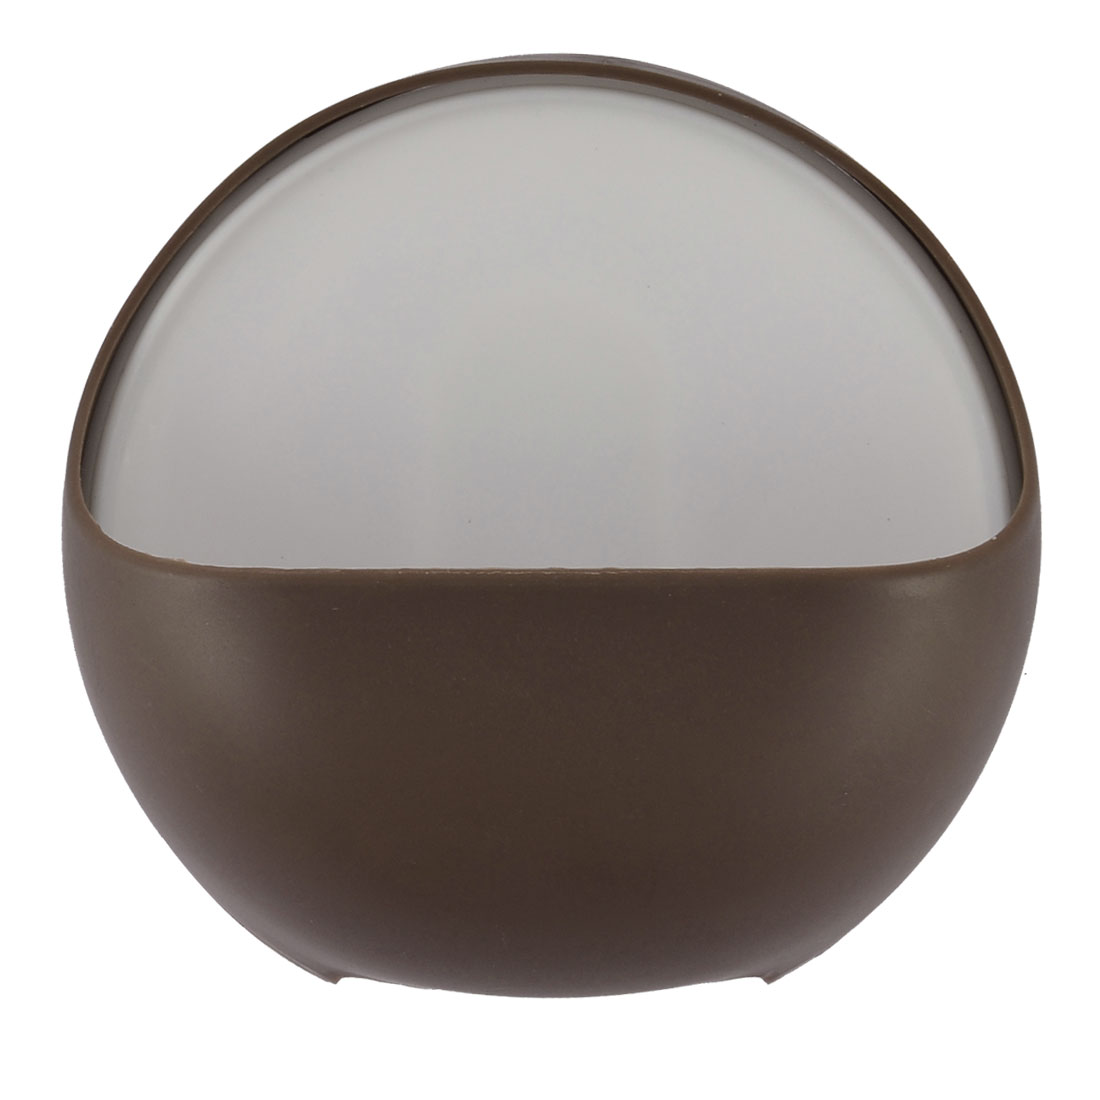 Bathroom Plastic Round Shaped Wall Mounted Suction Cup Soap Holder Chocolate Color